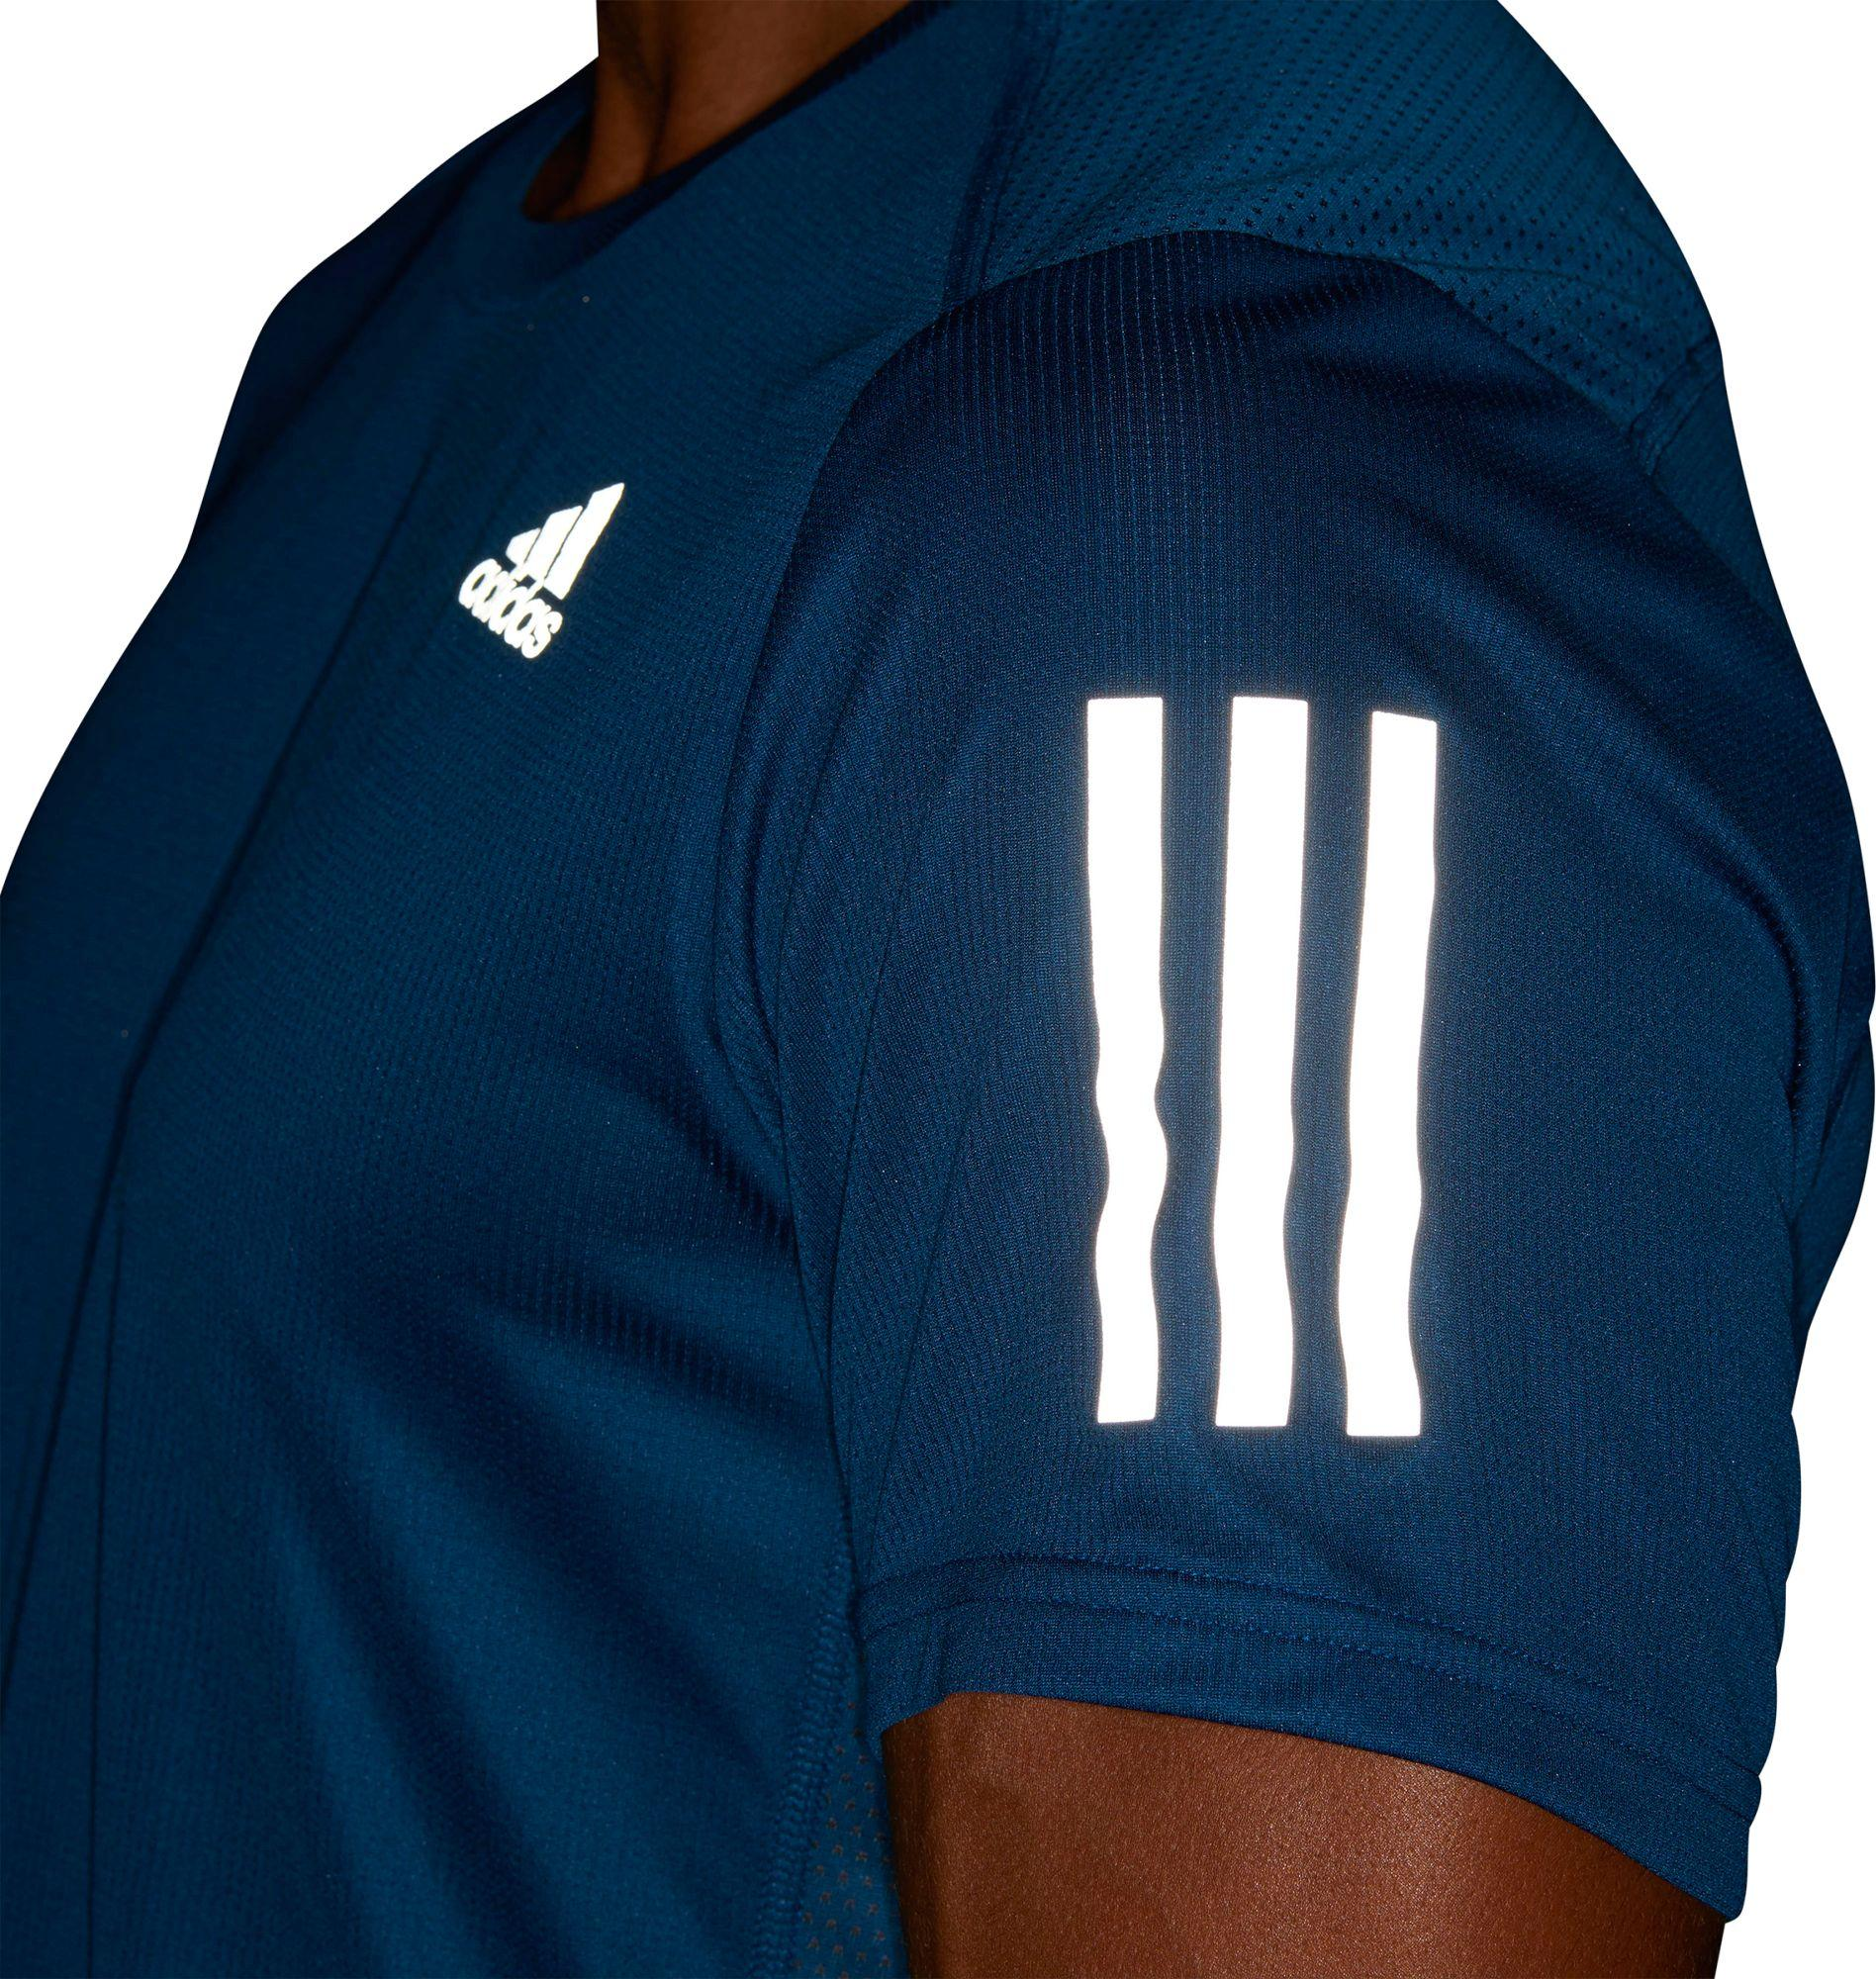 36e9dc014 Lyst - adidas On The Run T-shirt in Blue for Men